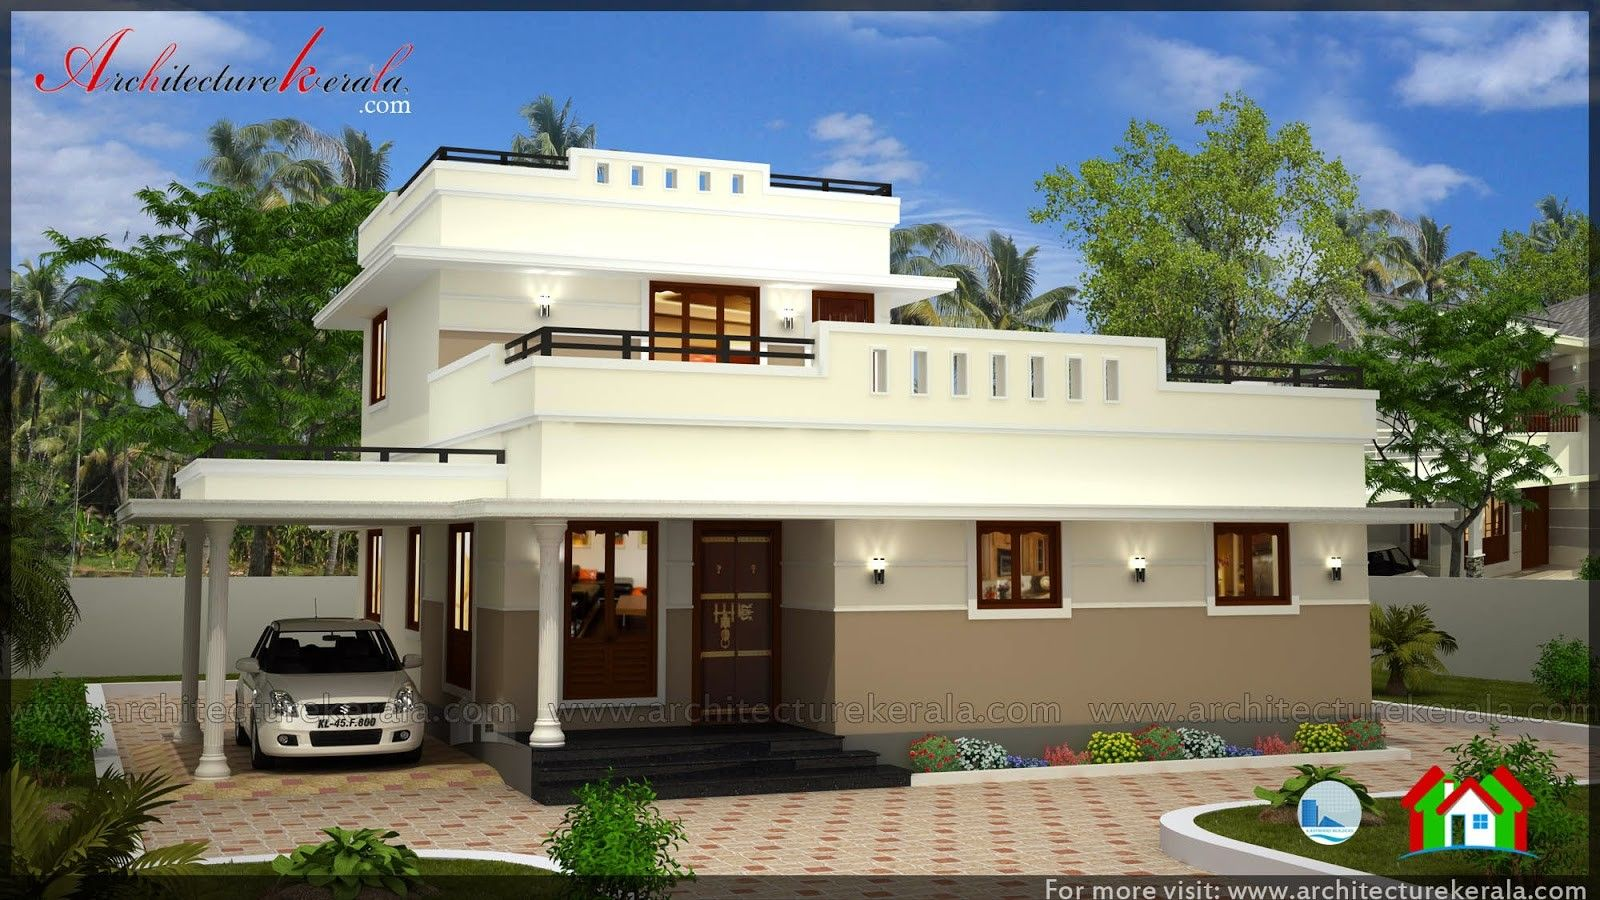 16 Awesome 1600 Square Foot House Plans House Plans Floor Plan Design House Roof